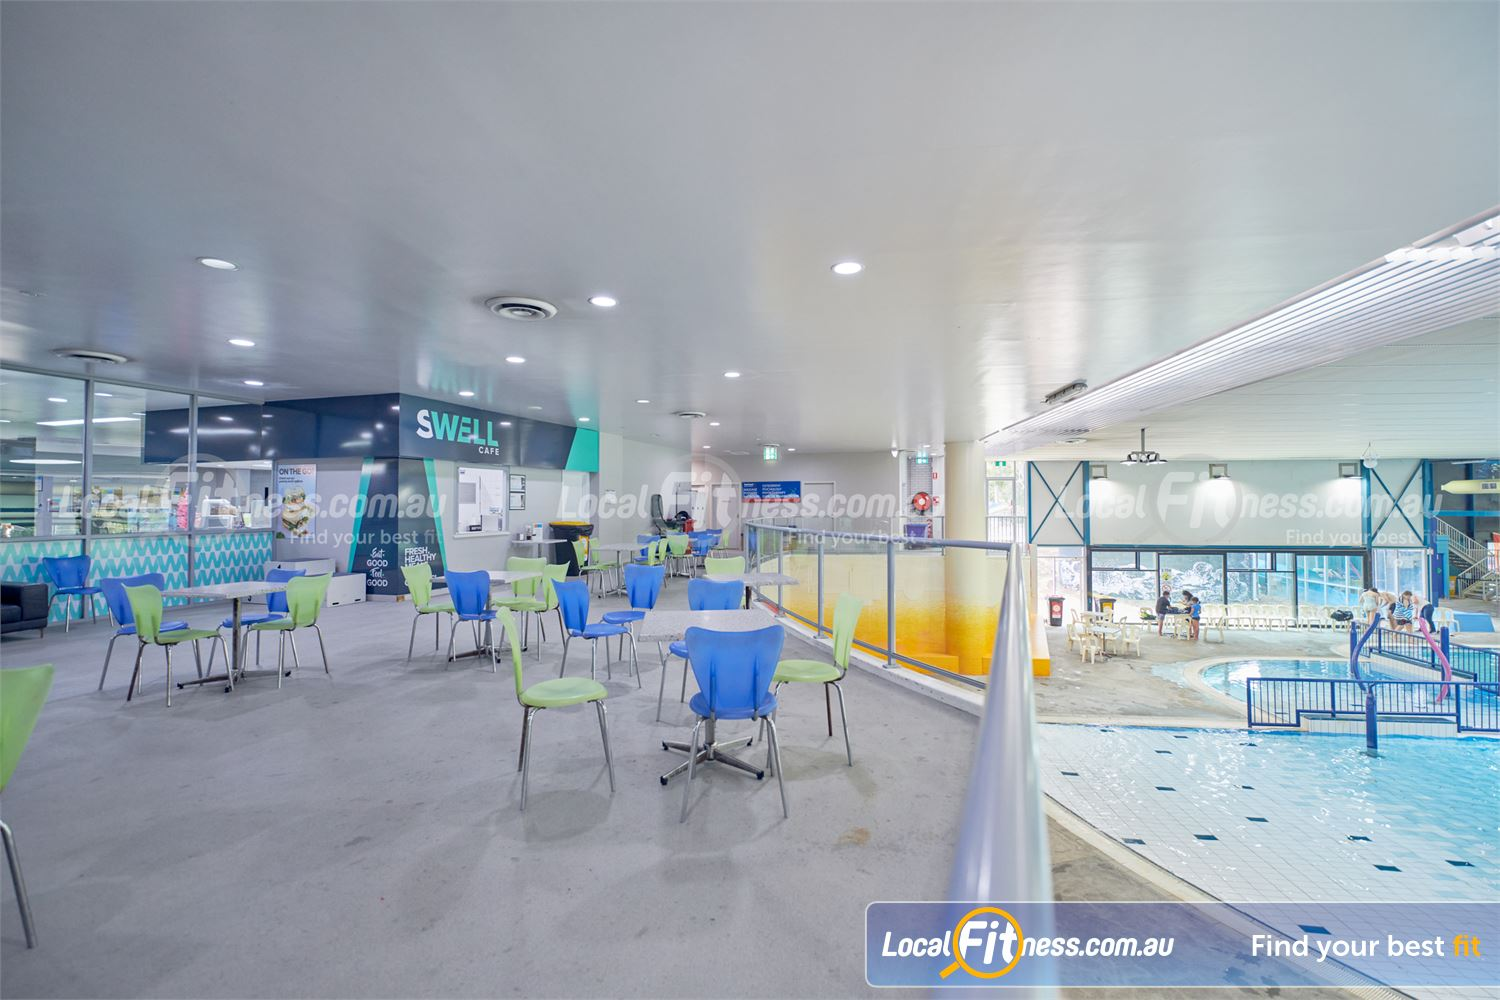 Knox Leisureworks Near Tremont We provide member seating in the pool area so your can watch your little ones.